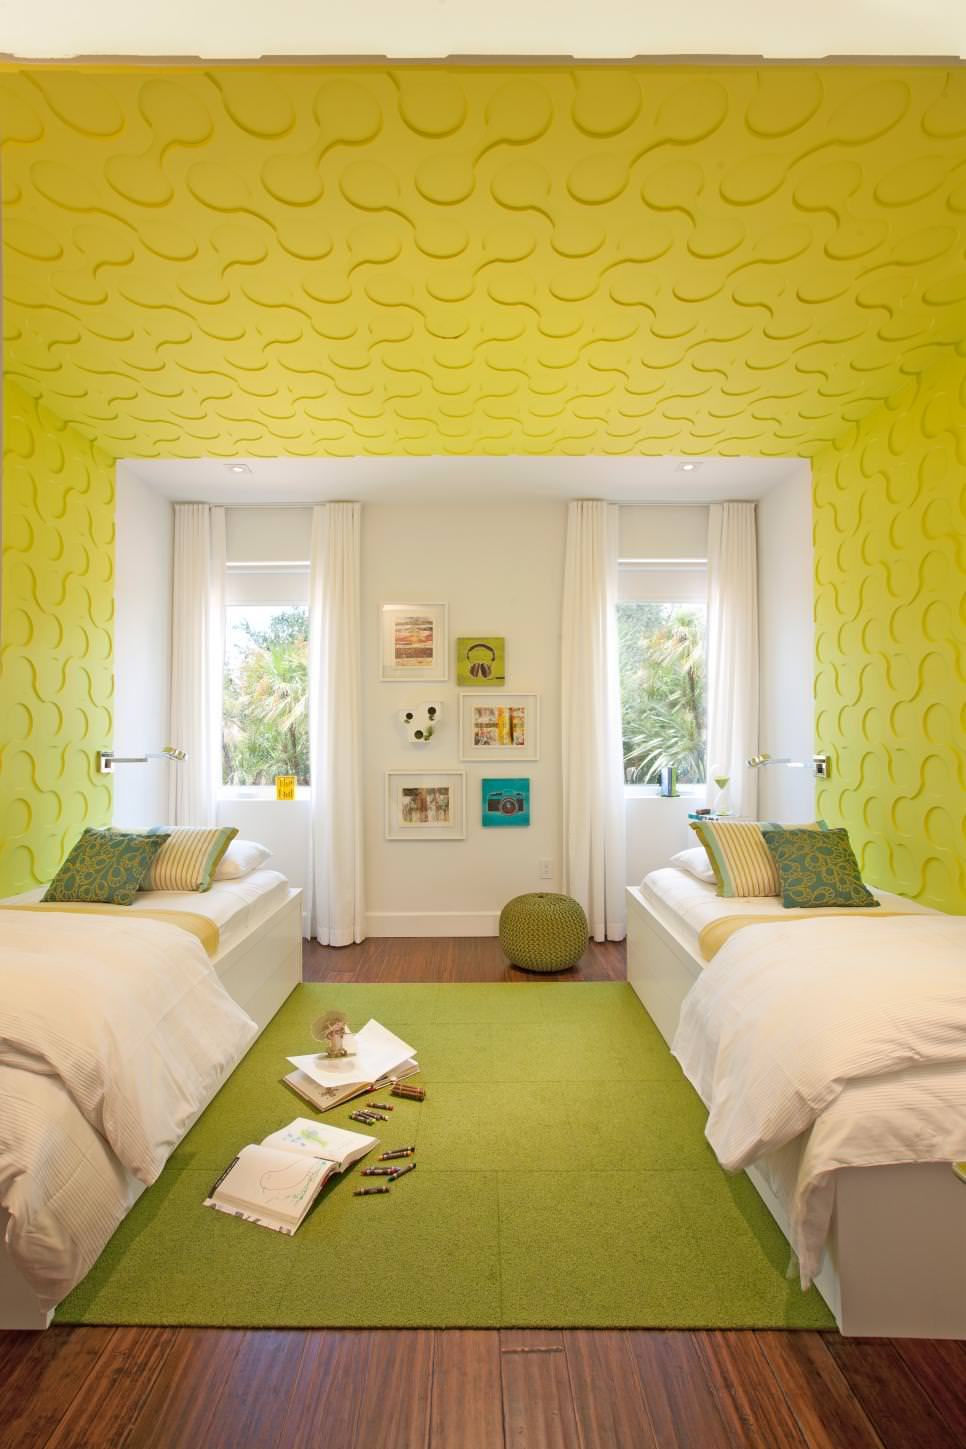 Twin beds with green walls